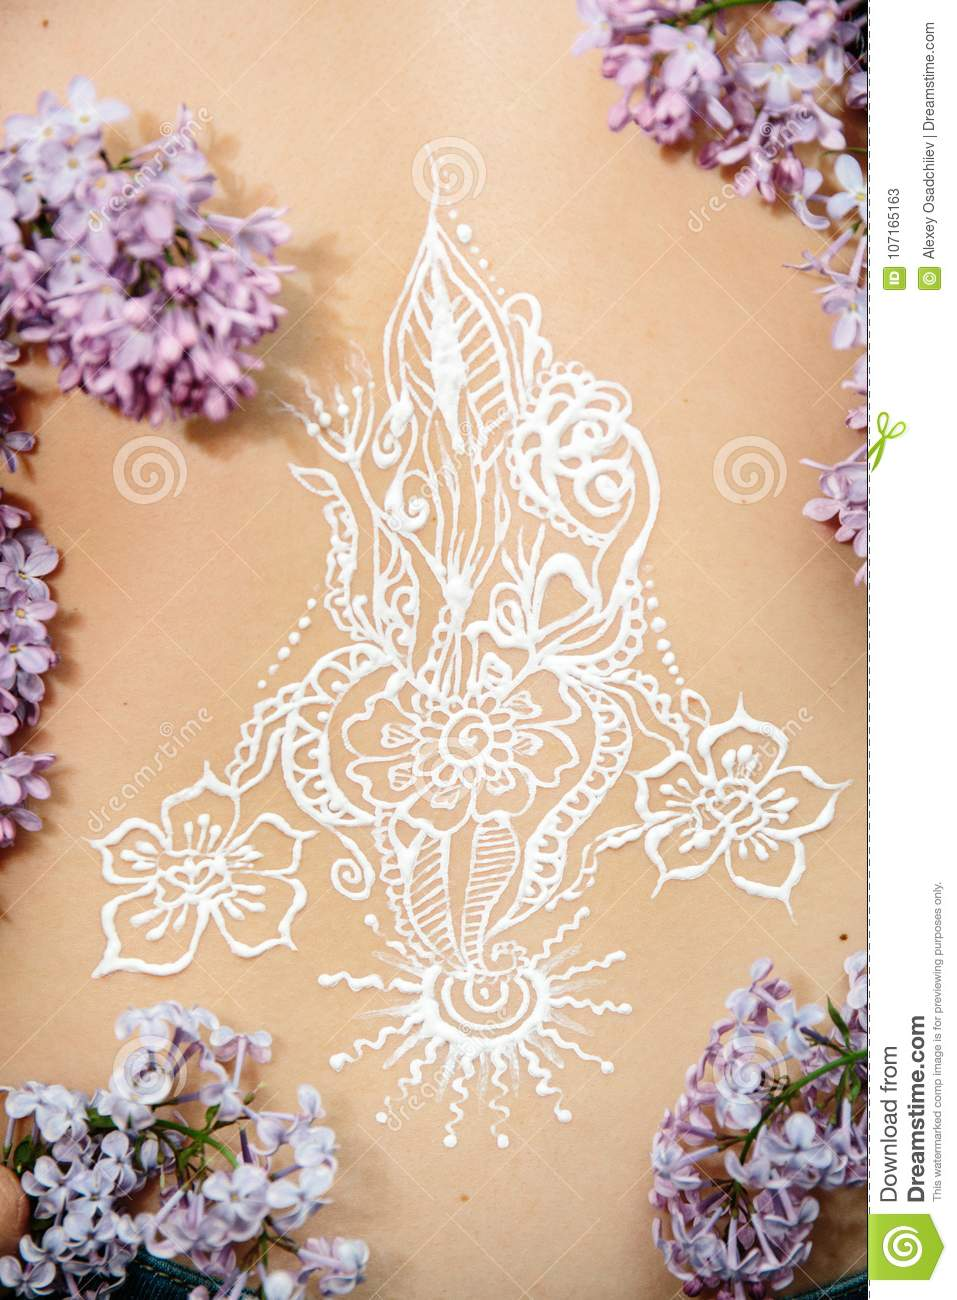 Mehendi Picture On Back Stock Image Image Of Artistic 107165163